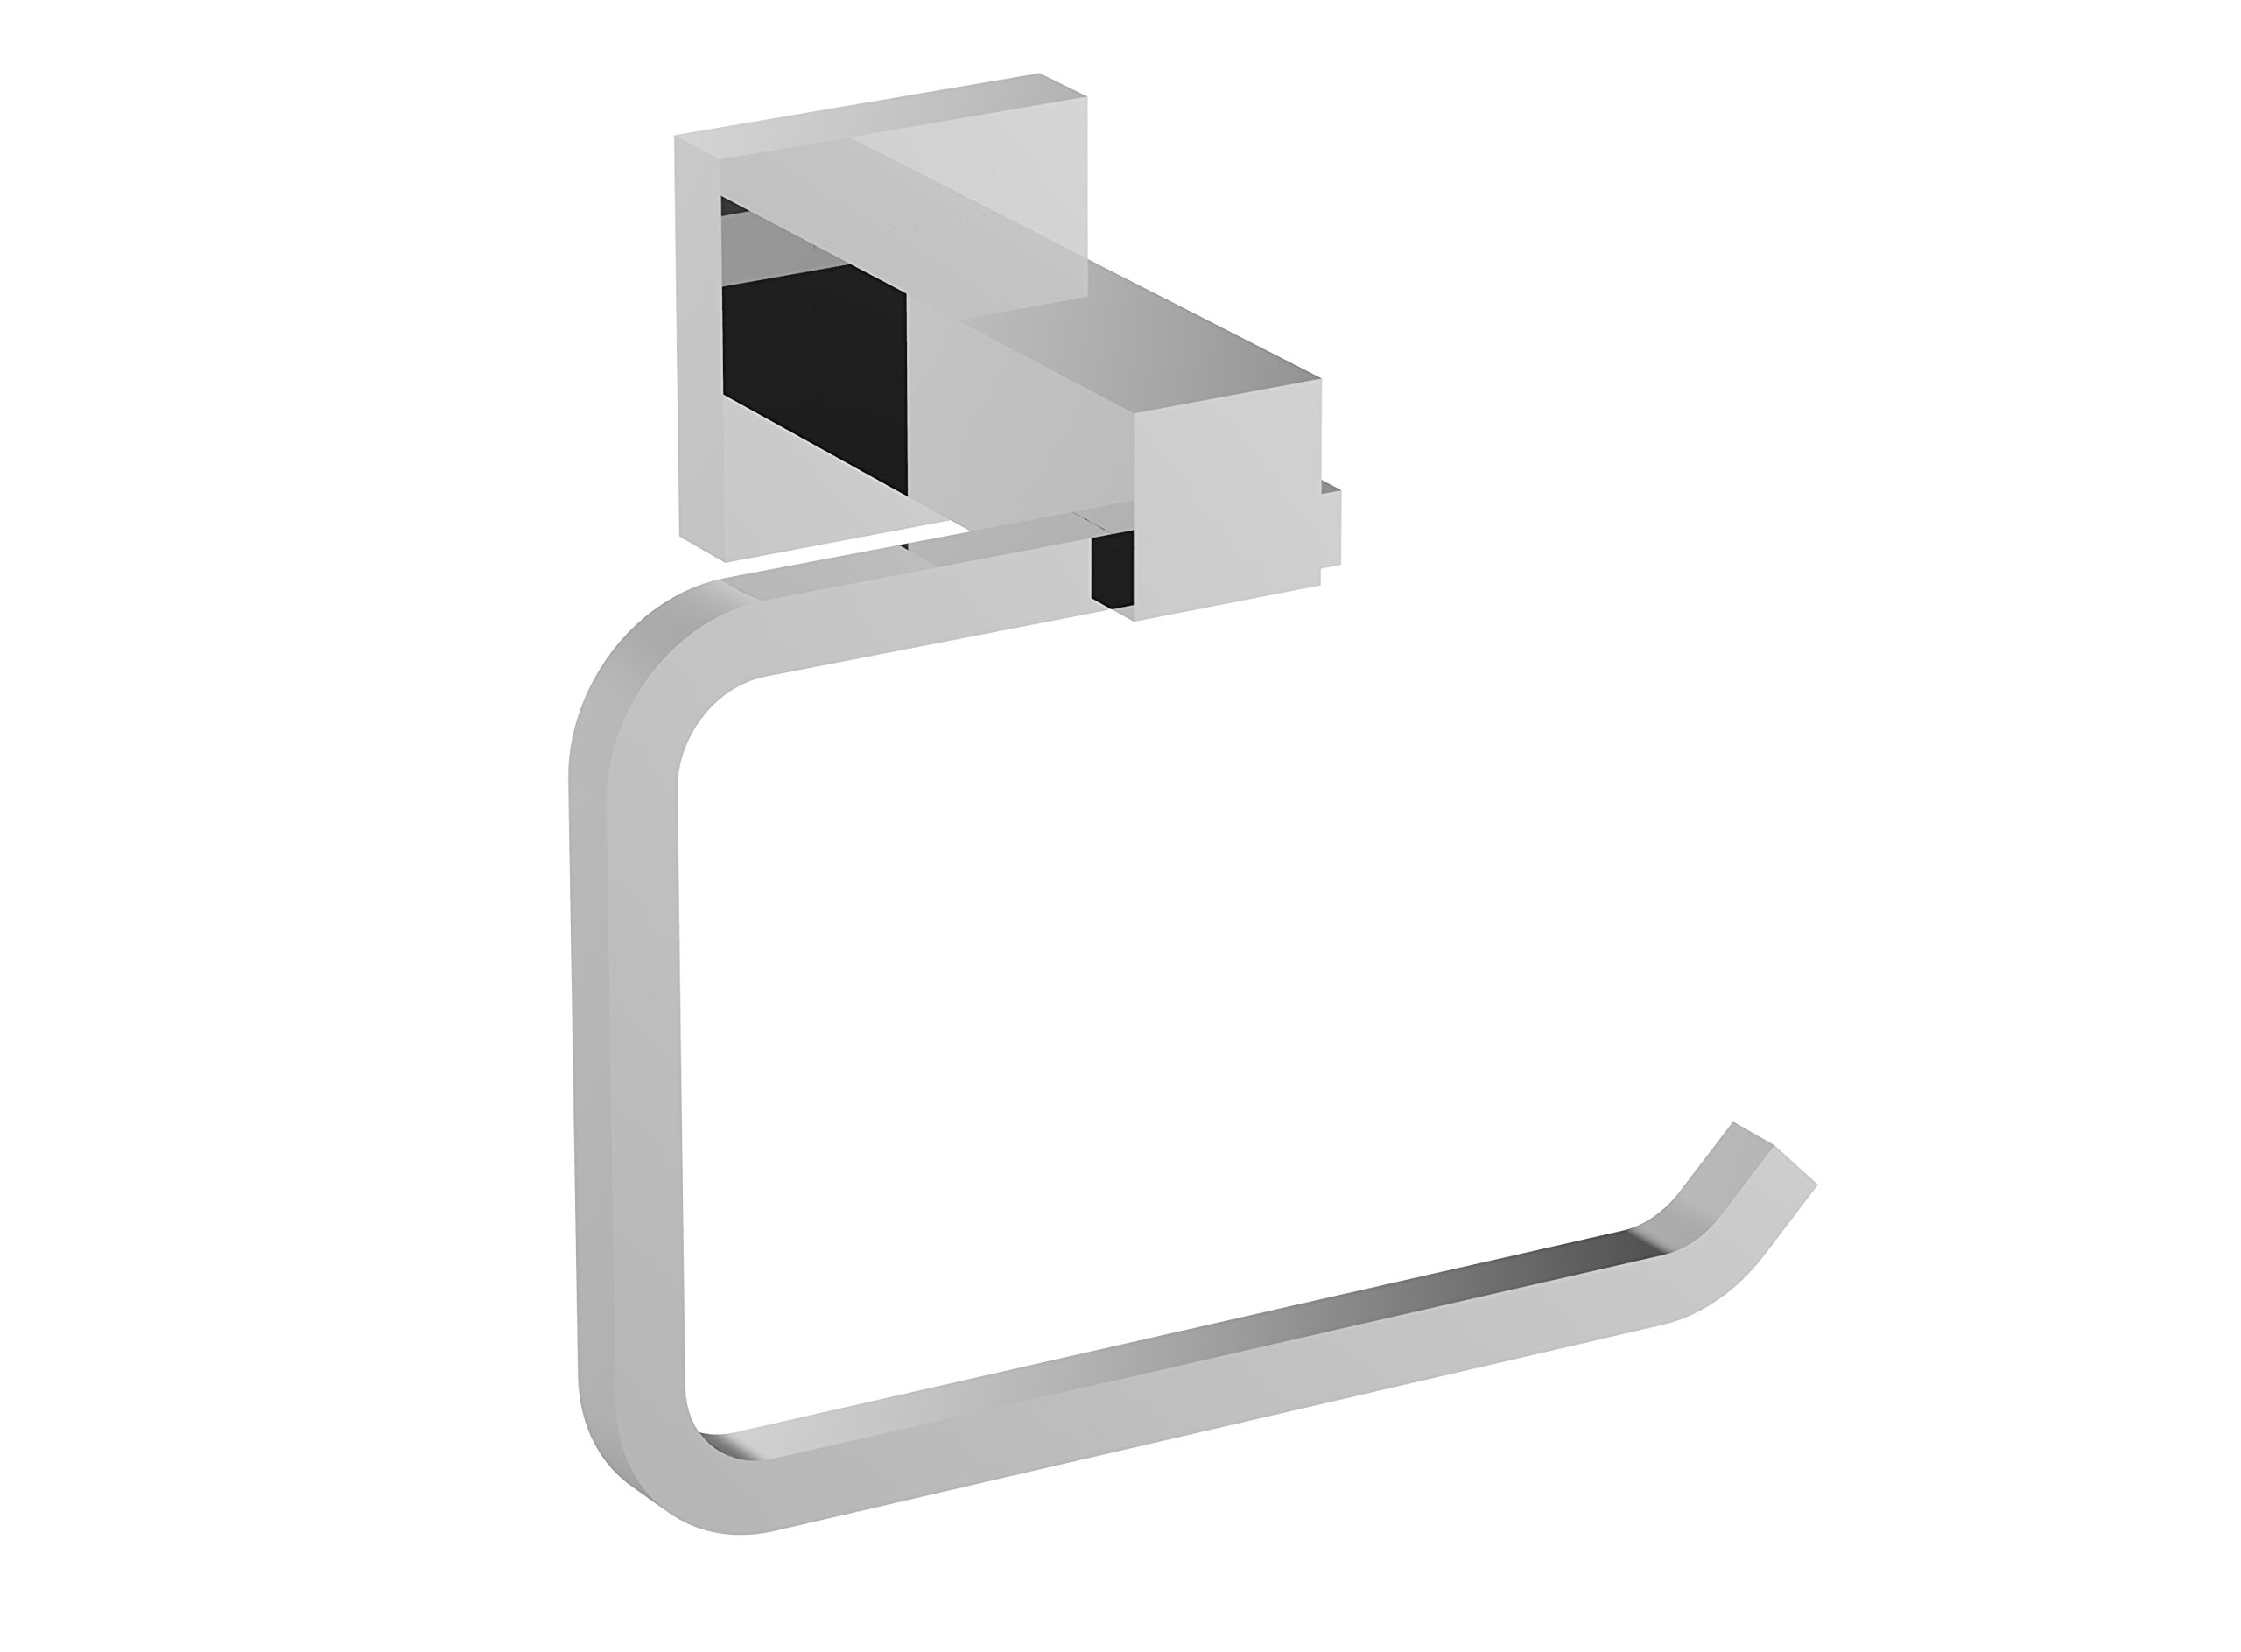 Eviva EVAC60BN Square Holdy Toilet Paper Or Towel Holder Bathroom Accessories Combination, Brushed Nickel